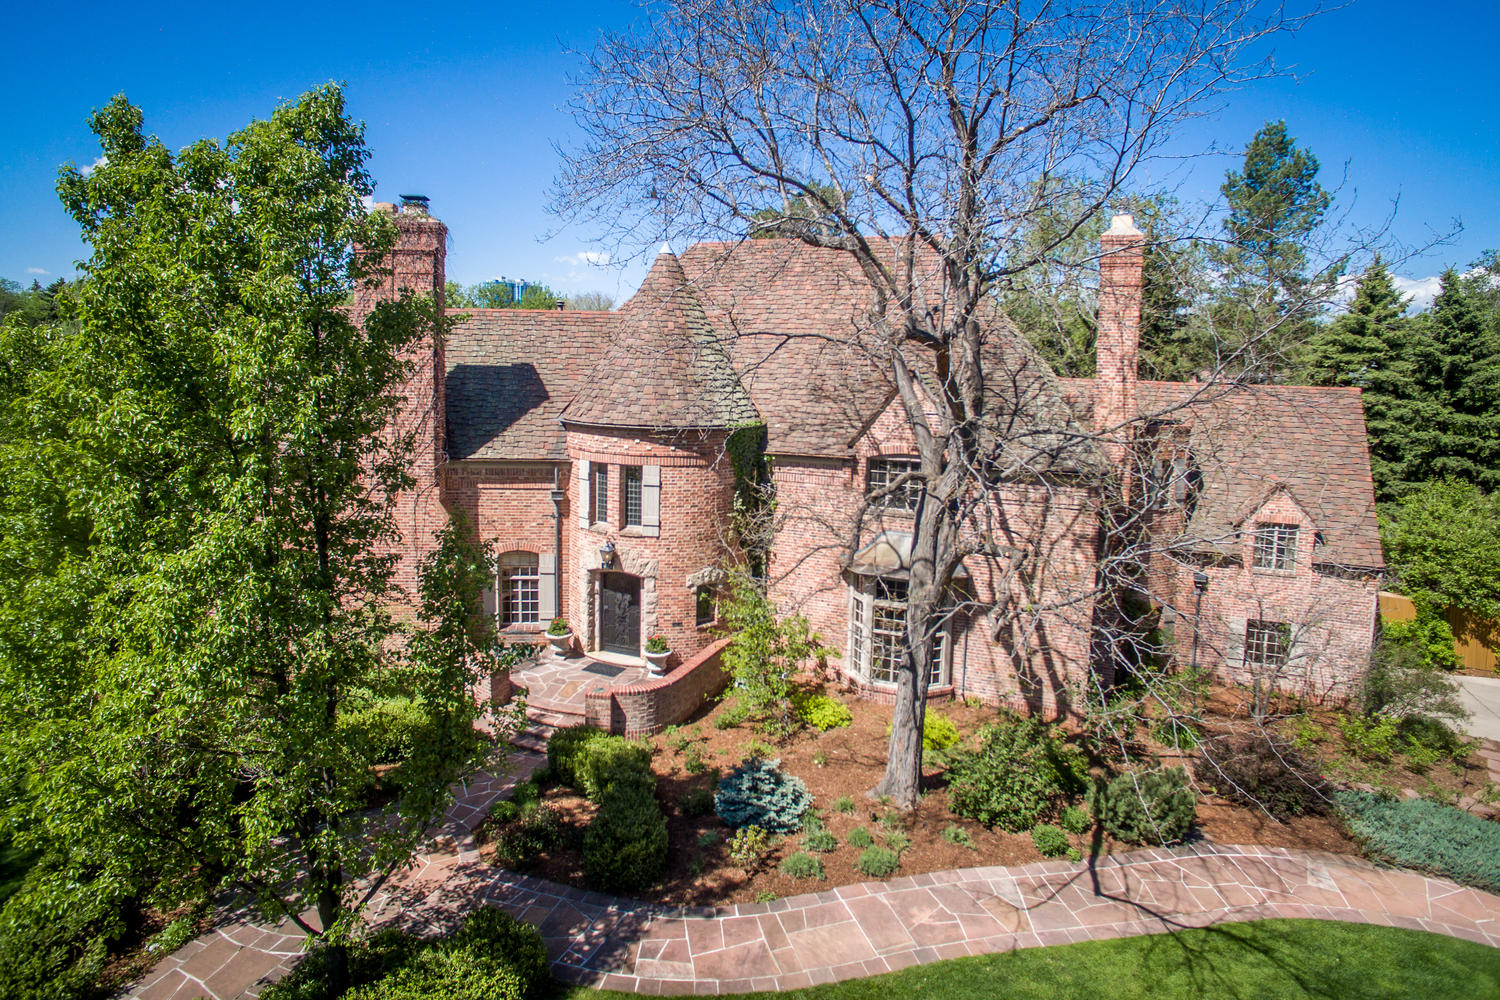 Single Family Home for Active at Historic 1933 Tudor in Country Club 401 Race Street Denver, Colorado 80206 United States